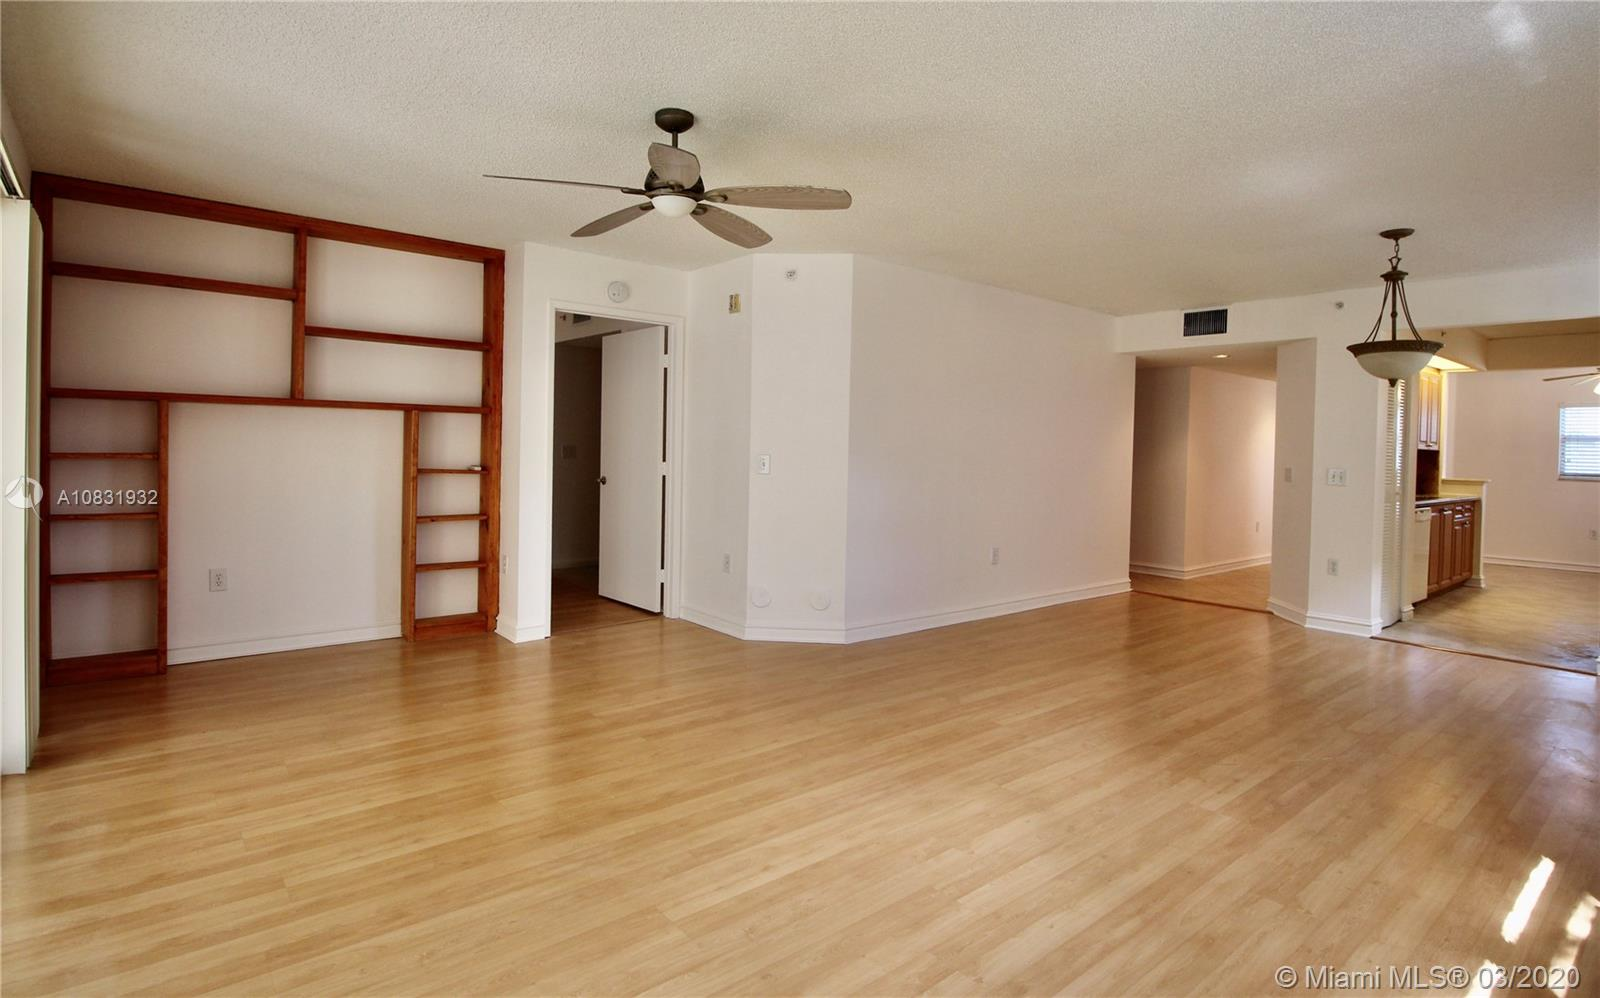 Spacious and renovated 2 bedroom condominium with exceptional amenities. This unit is located in Century Village of Pembroke Pines, a 55+ community. Corner unit on the first floor, with easy access. Features include ceramic and wood flooring, granite countertops, and tile finishes throughout the home. A bright breakfast room leads into the kitchen with a spacious living area. Enjoy our beautiful Florida weather from your screened-in patio. Walk in closets, in-house washer and dryer, and ample storage space makes for ultimate convenience. The master bath features a beautiful mirrored vanity and all bathrooms are handicapped accessible. A/C replaced and updated appliances in the kitchen. Second bedroom has a private bathroom entrance and is perfect for guests coming to visit.